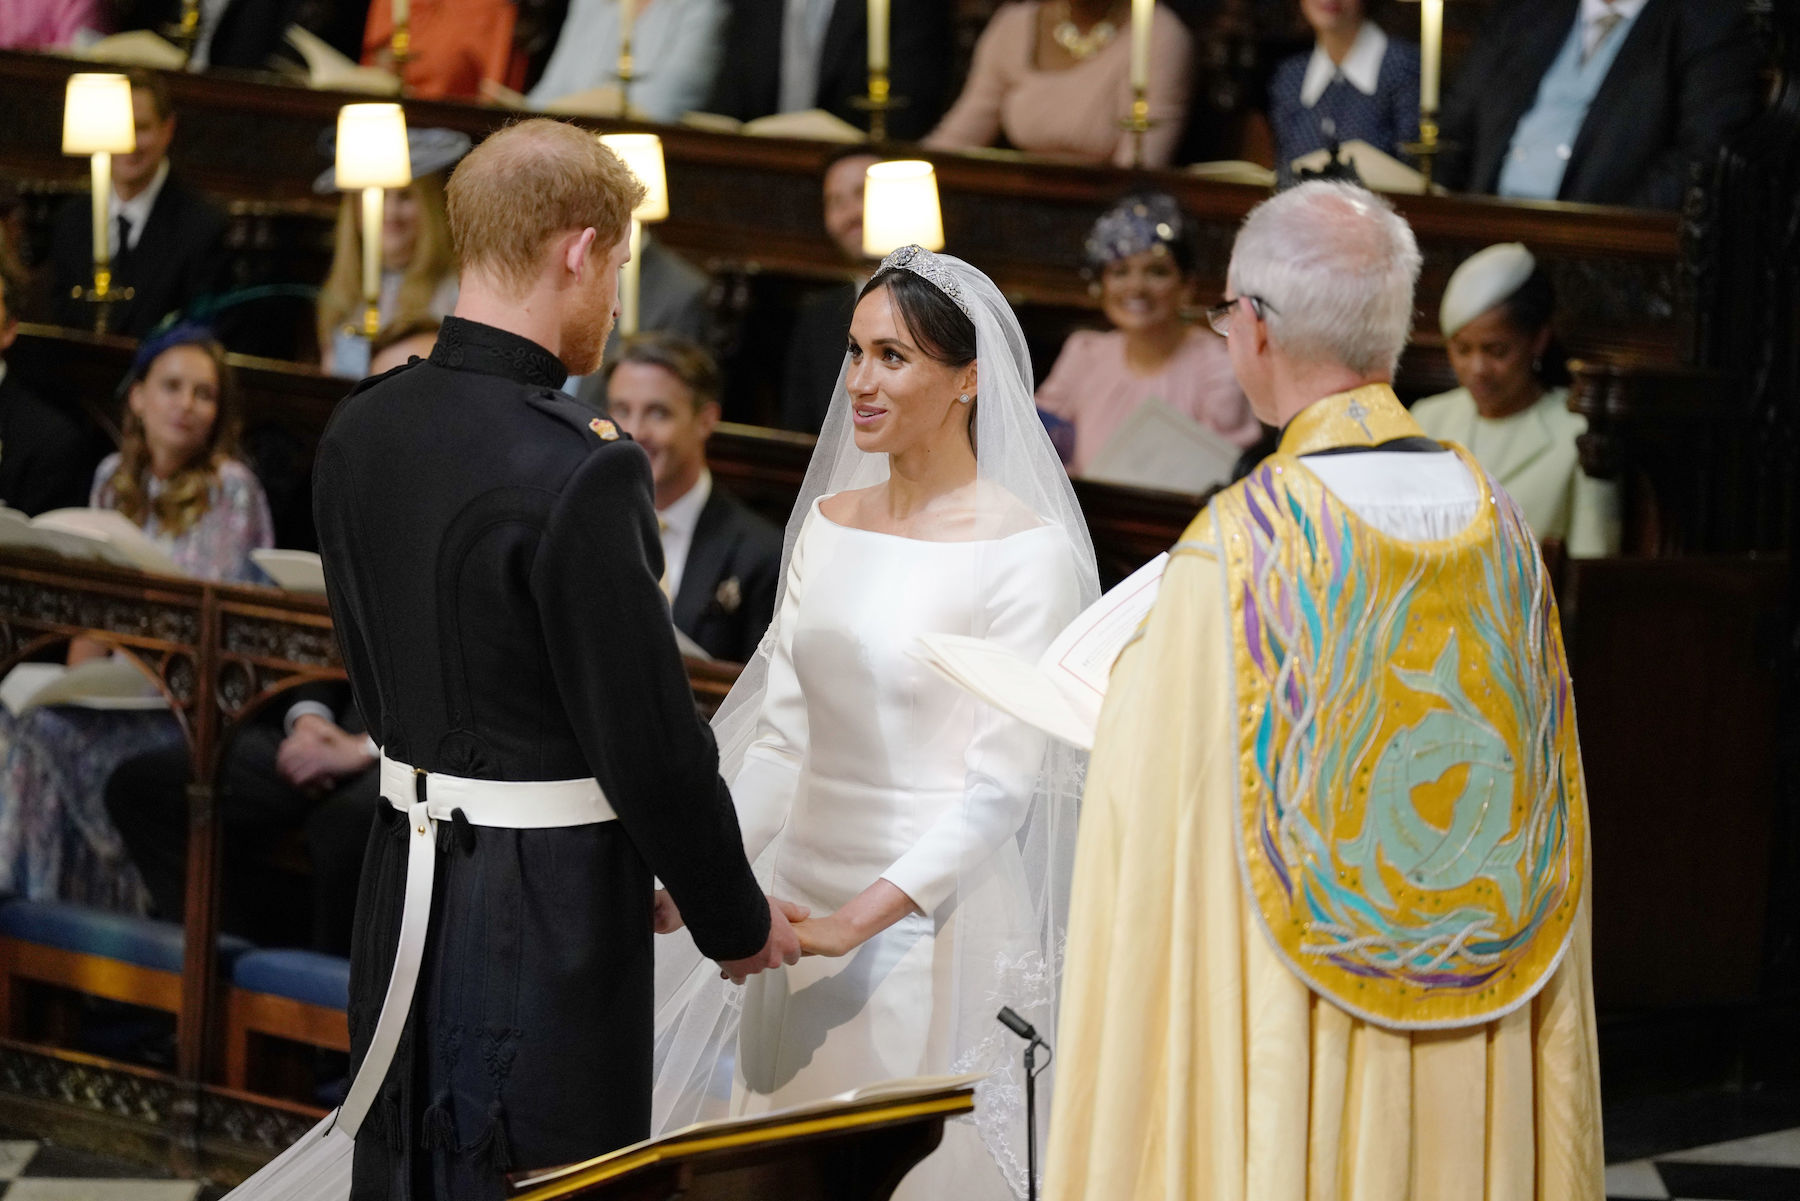 "<div class=""meta image-caption""><div class=""origin-logo origin-image wls""><span>wls</span></div><span class=""caption-text"">Britain's Prince Harry, Duke of Sussex, and US fiancee of Britain's Prince Harry Meghan Markle during their wedding ceremony in St George's Chapel. (Dominic Lipinsky/AFP/Getty Images)</span></div>"